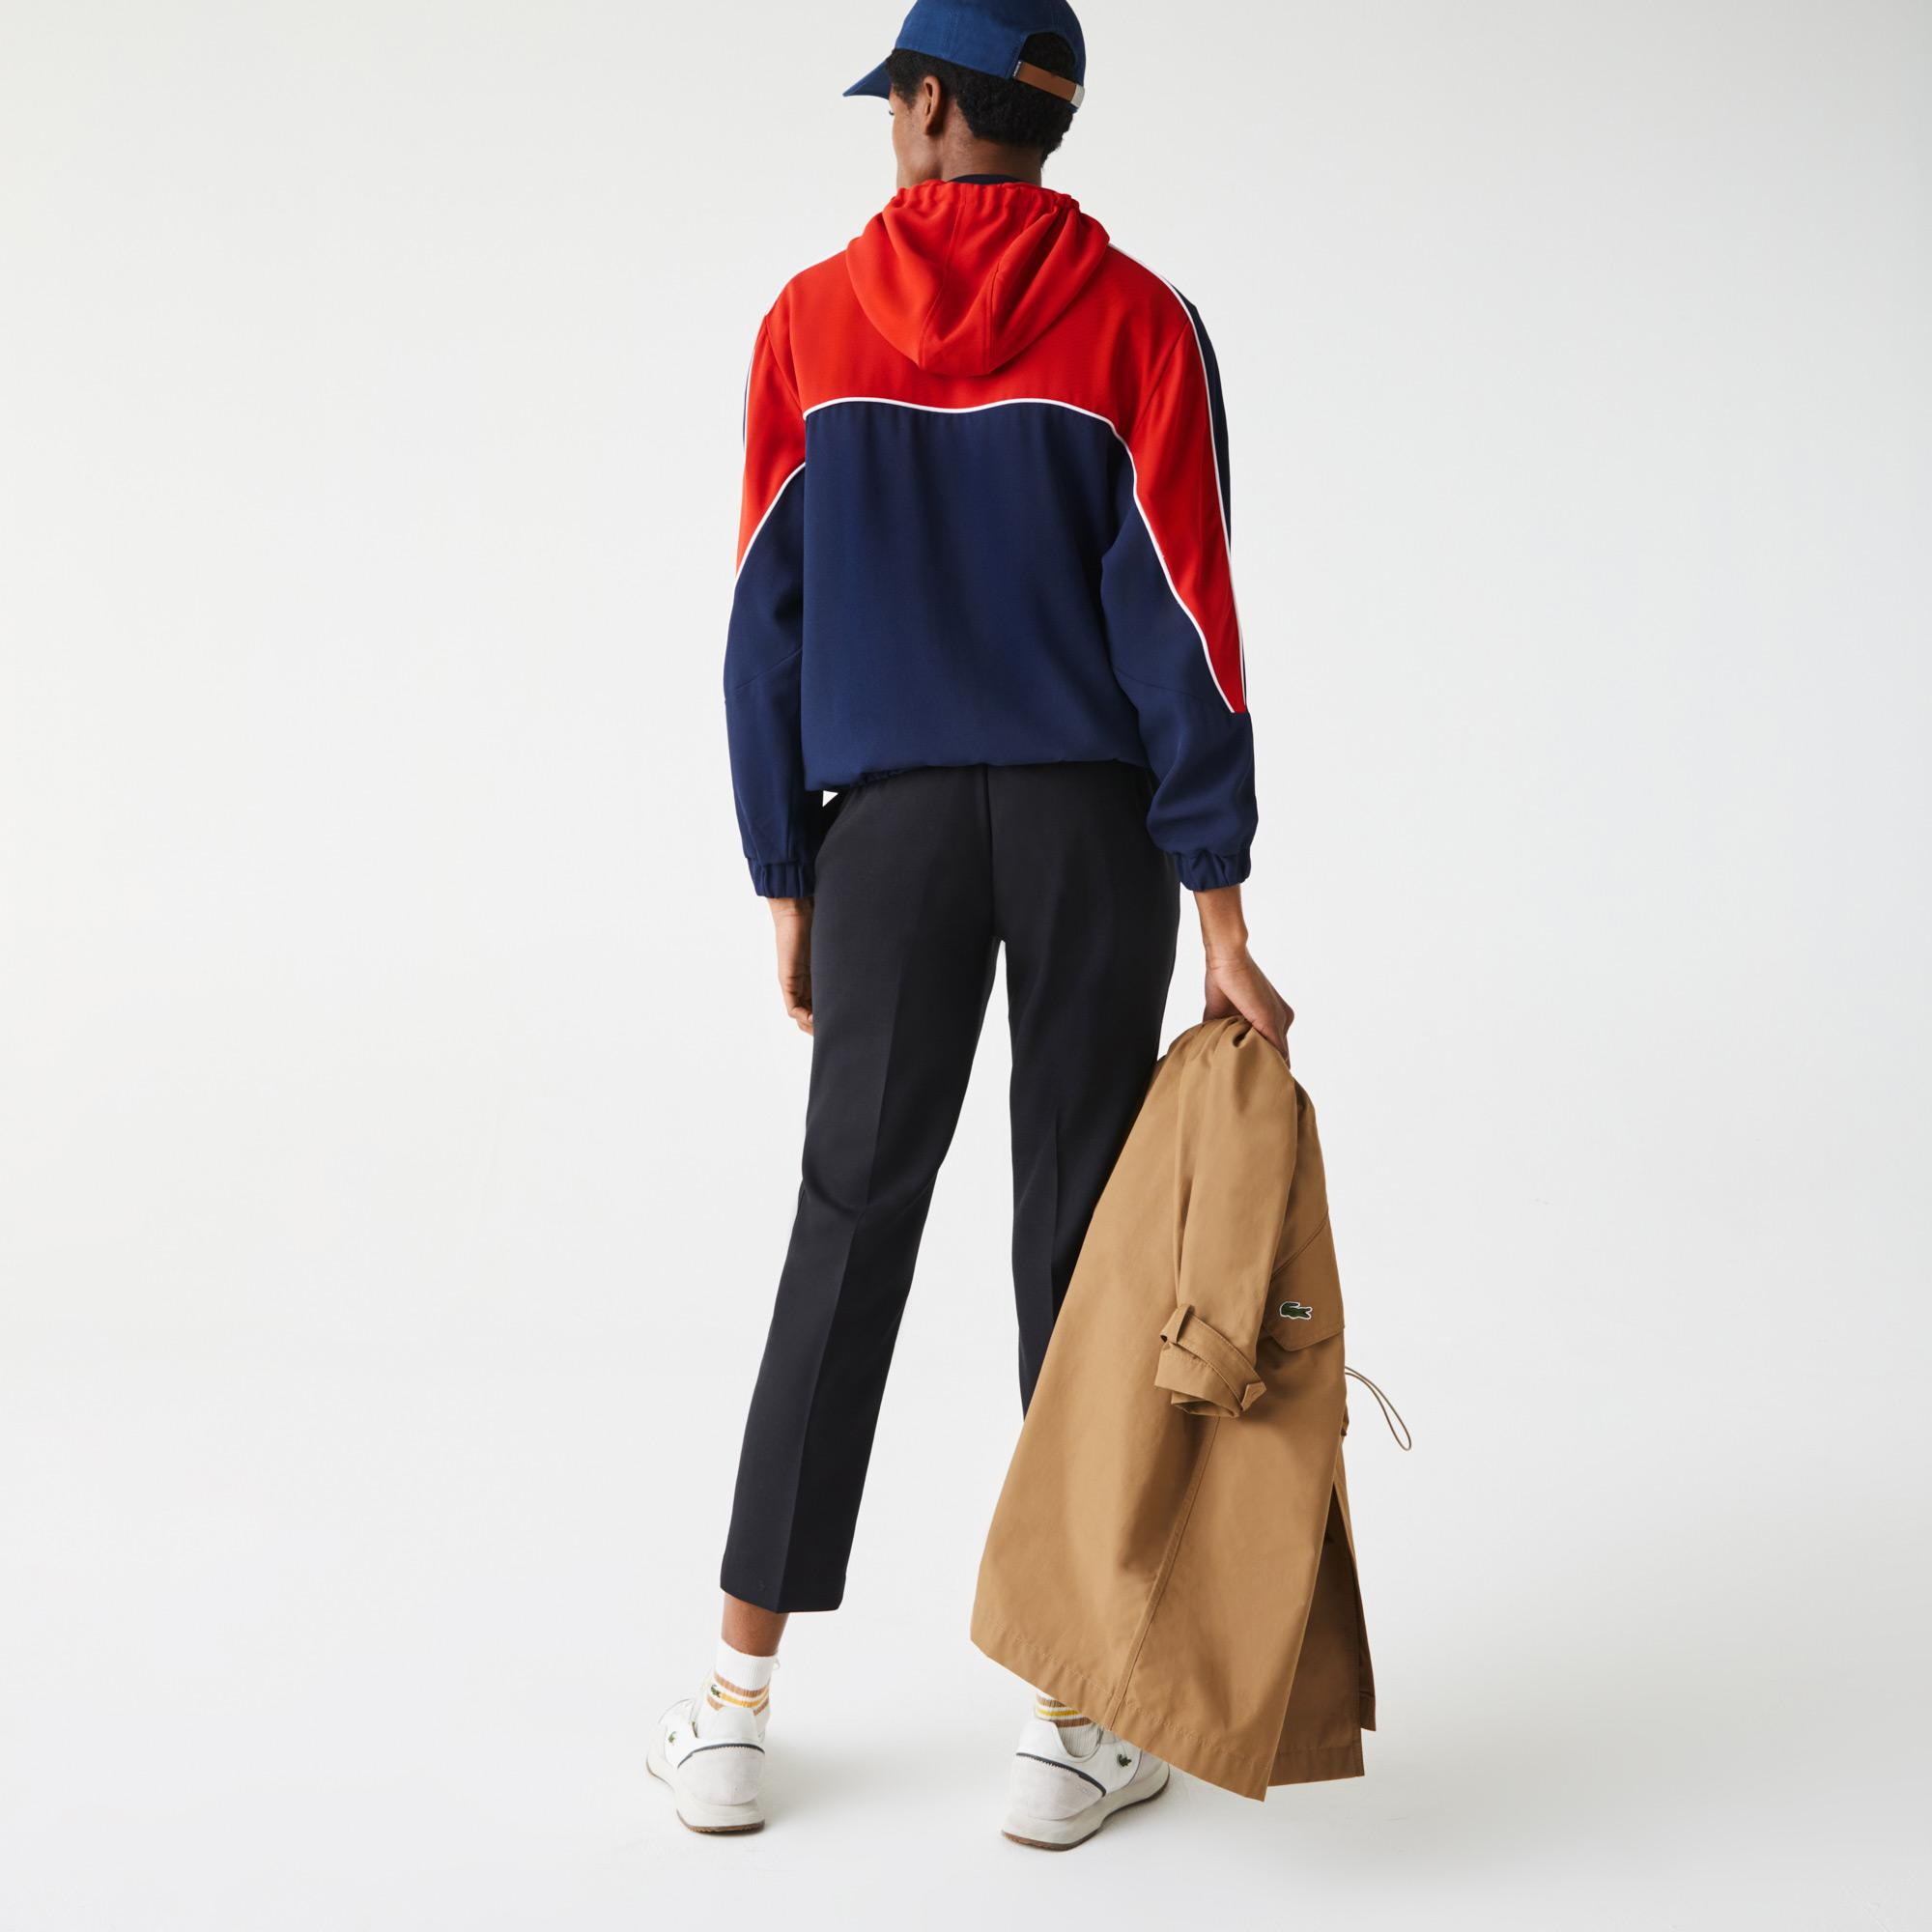 Lacoste Women's Hooded Colorblock Zip Sweatshirt